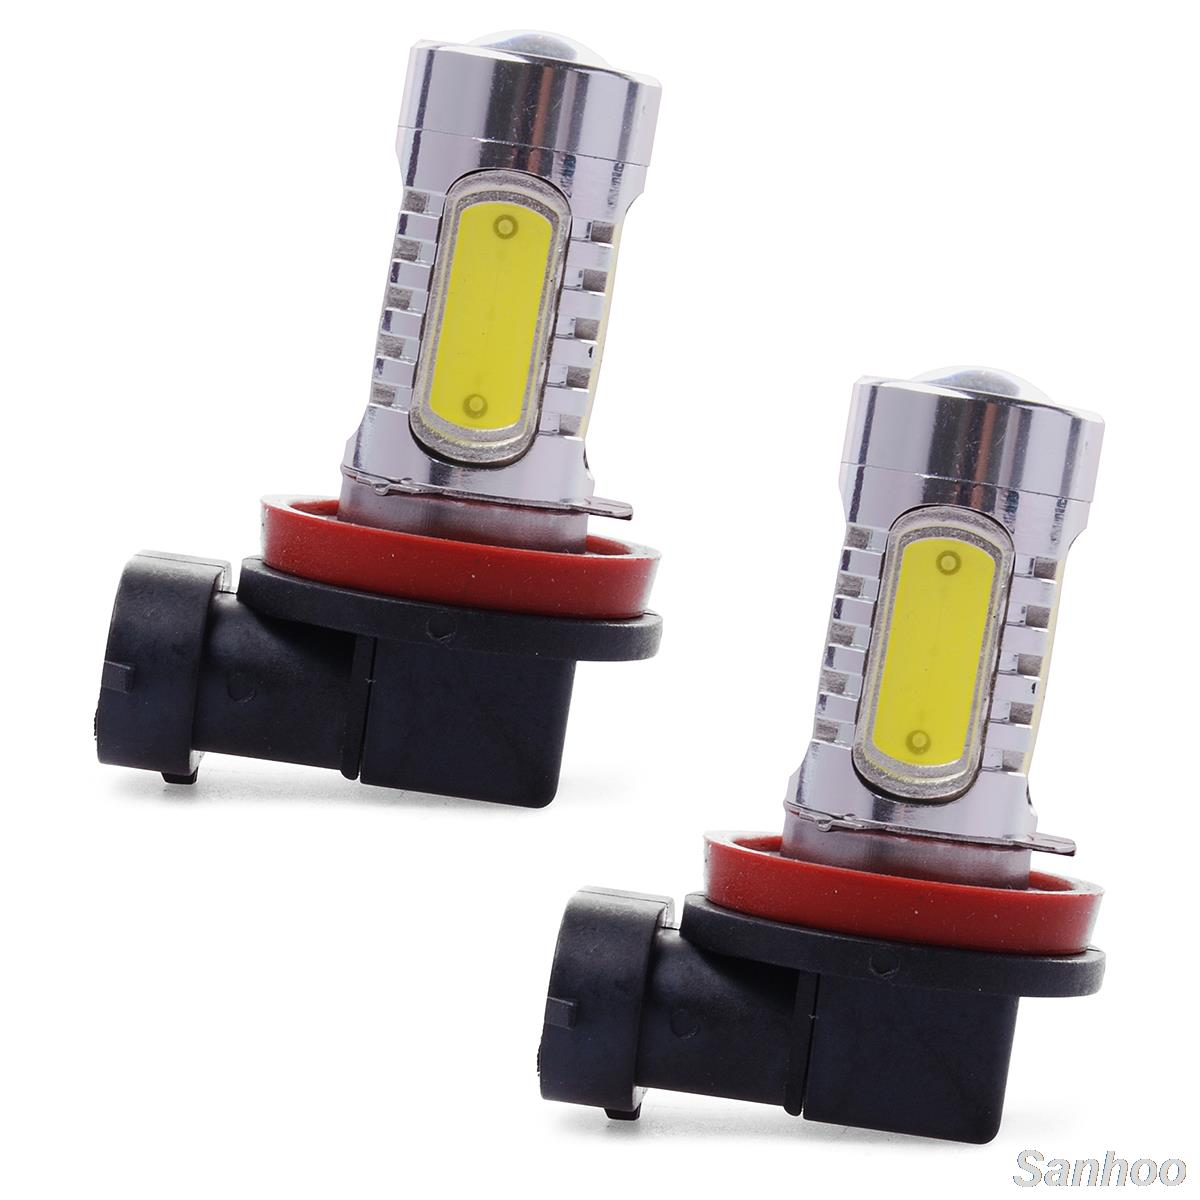 H11 7.5W High Power COB LED Bulb Car Auto Light  Daytime Drive Source Projector DRL Driving Fog Headlight Lamp Xenon White DC12V